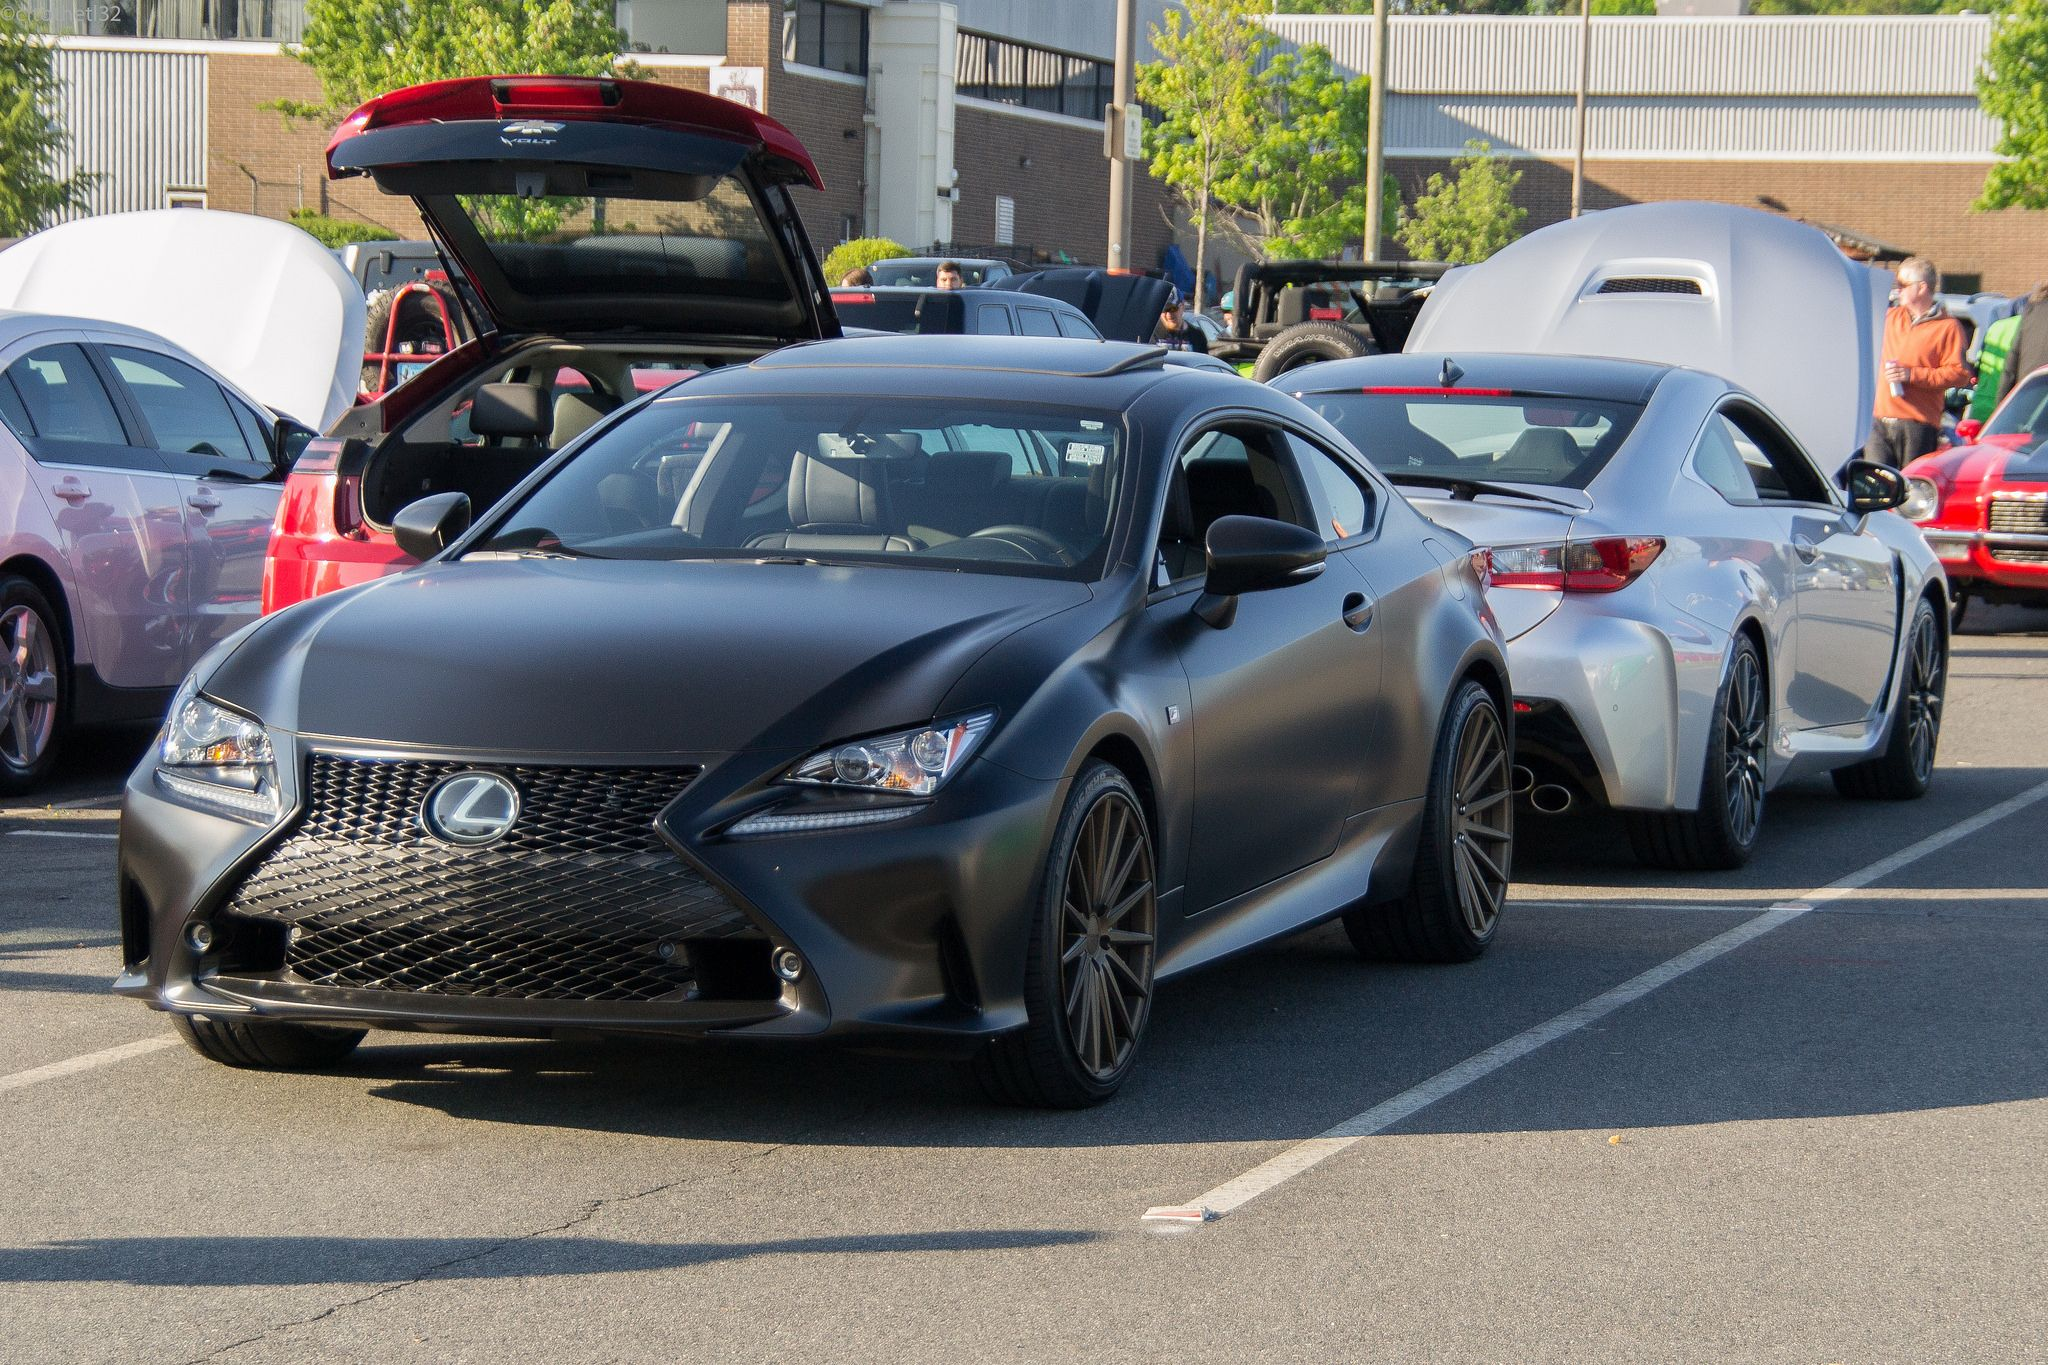 Satin Black Wrapped LexusRC 350 FSport and Silver